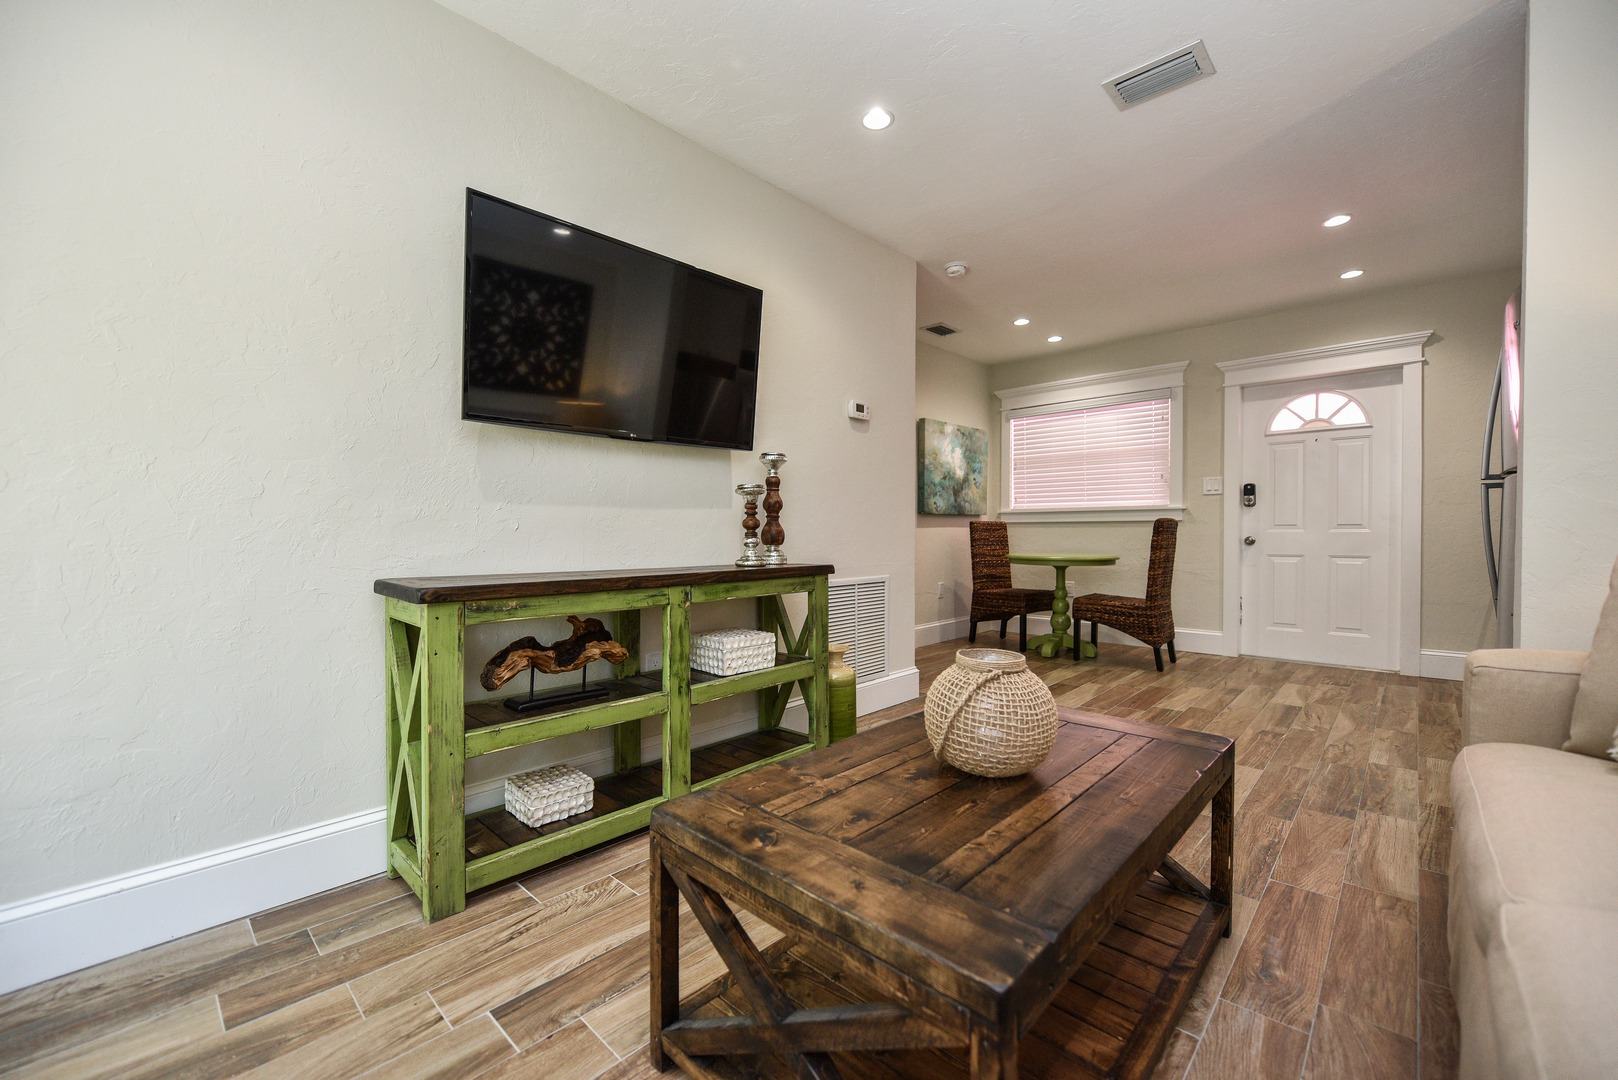 Large HDTV. Spacious Living Area with Great Natural Light